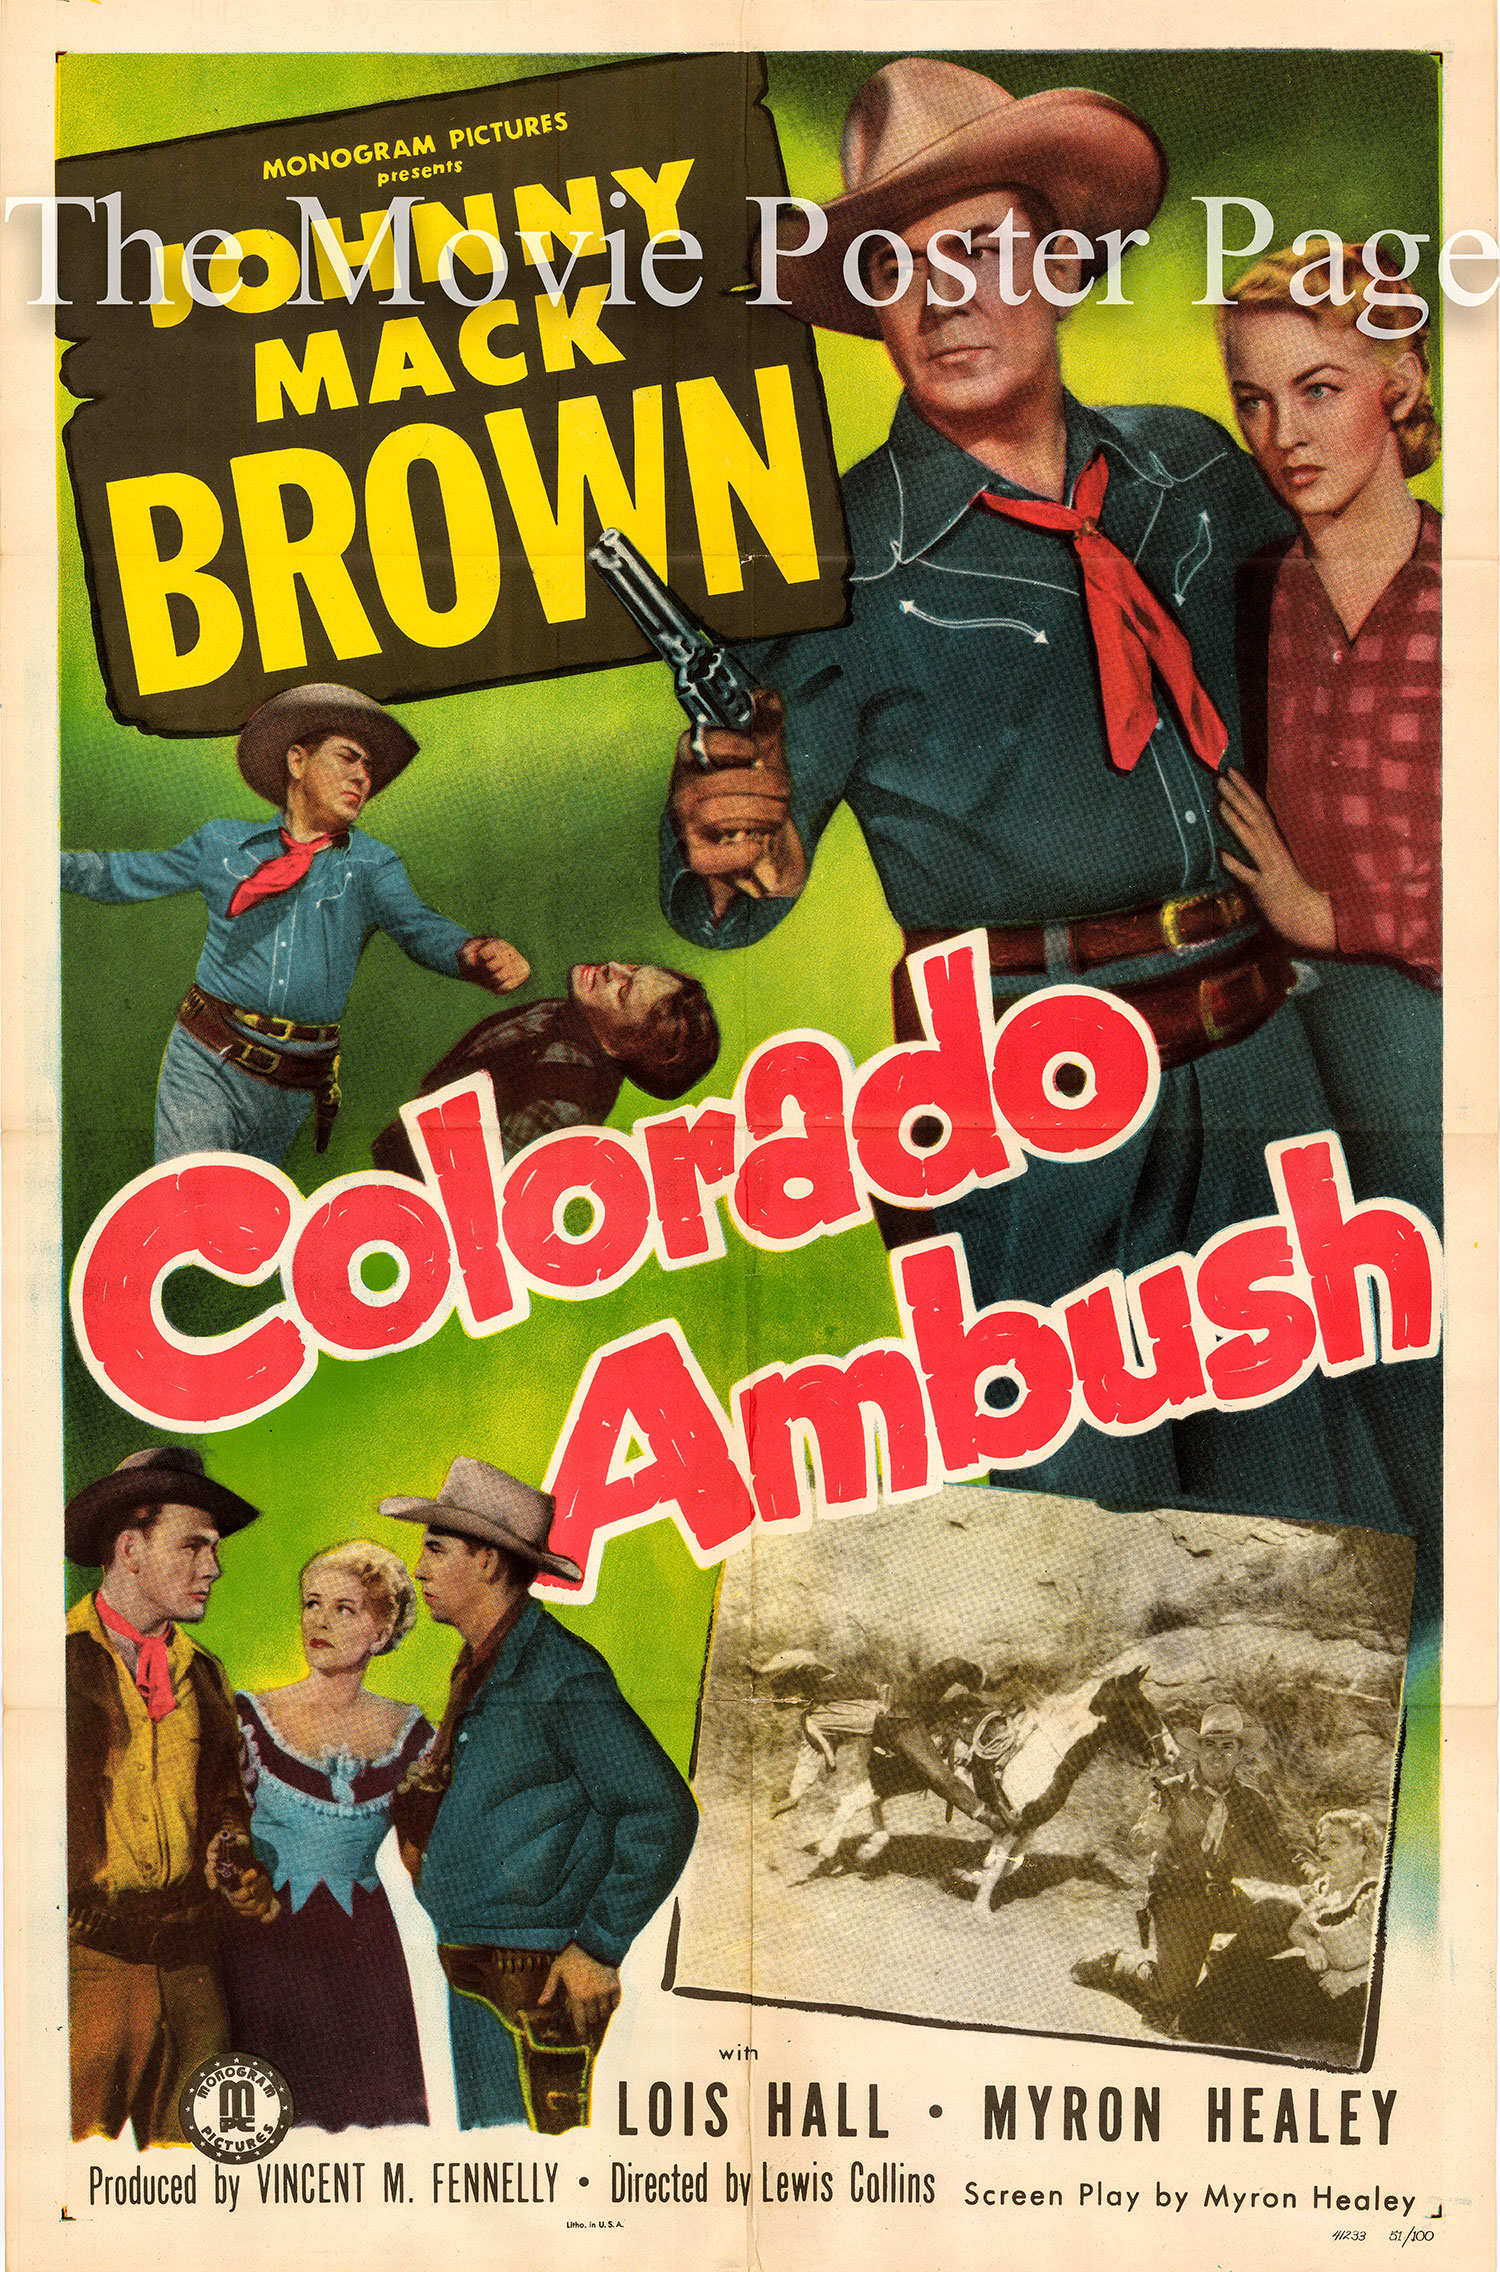 Pictured is a US one-sheet promotional poster for the 1951 Lewis D. Collins film Colorado Ambush starring Johnny Mack Brown.